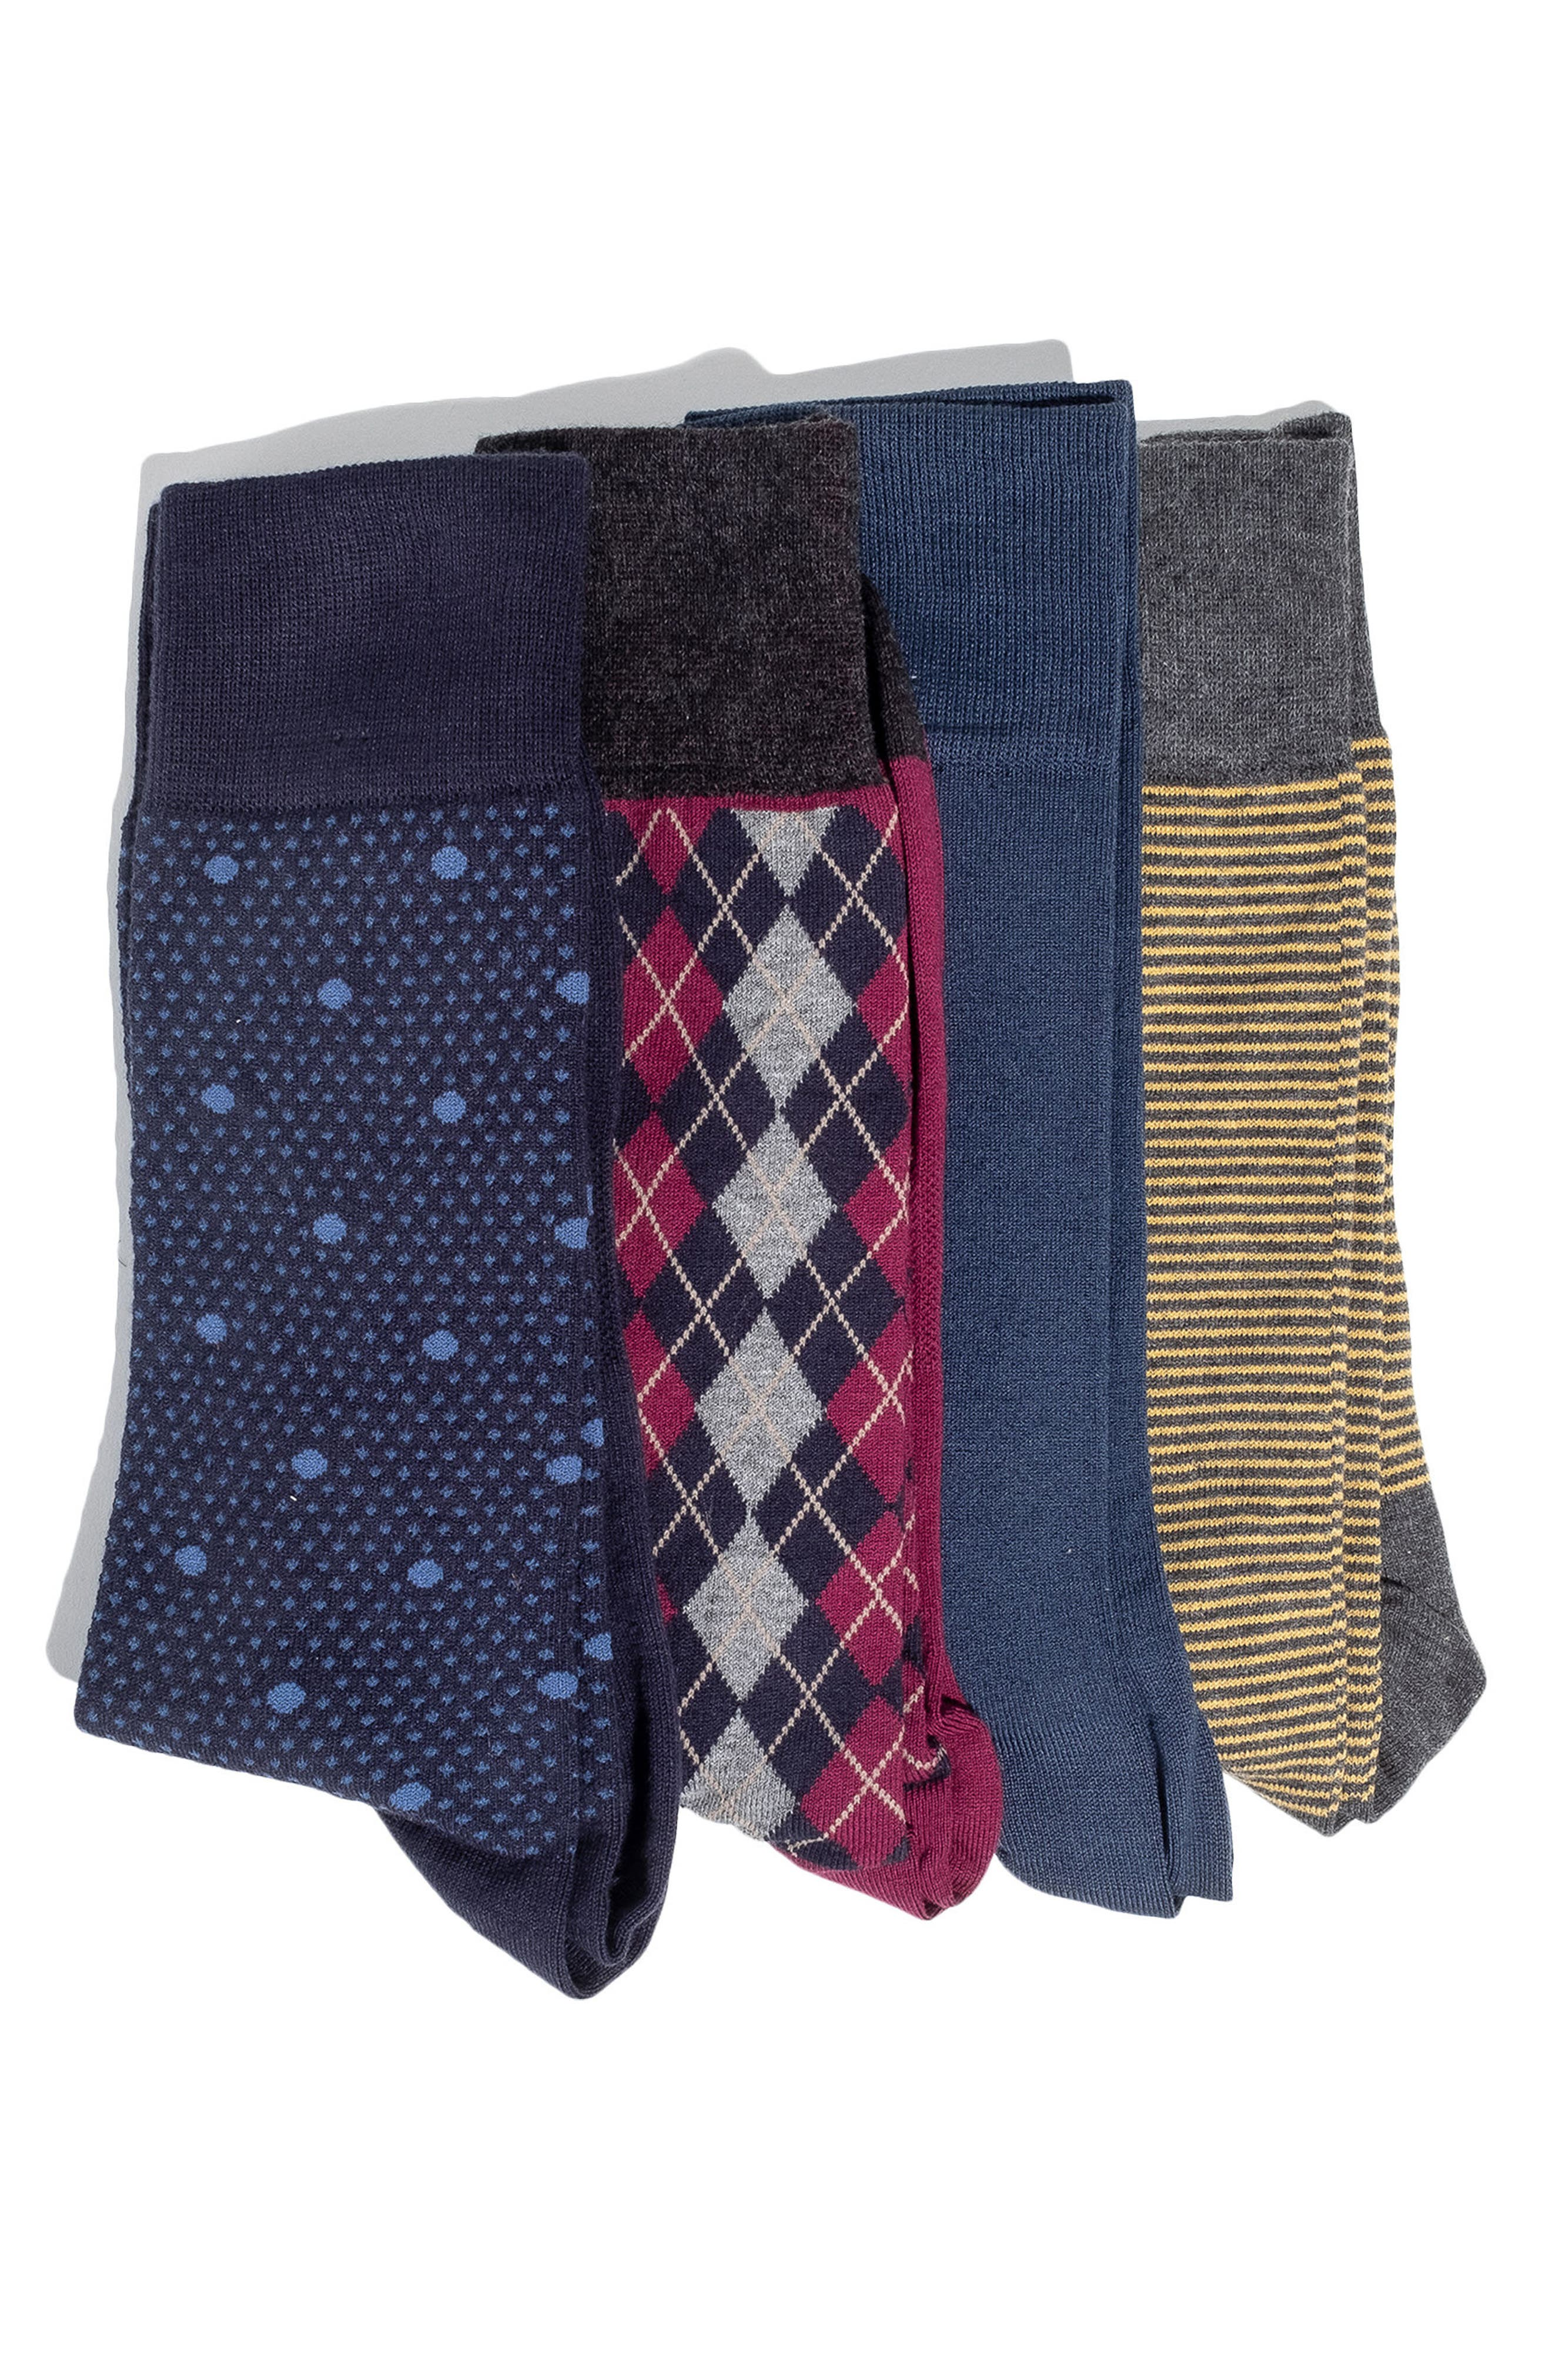 4-Pack Socks,                             Main thumbnail 1, color,                             400